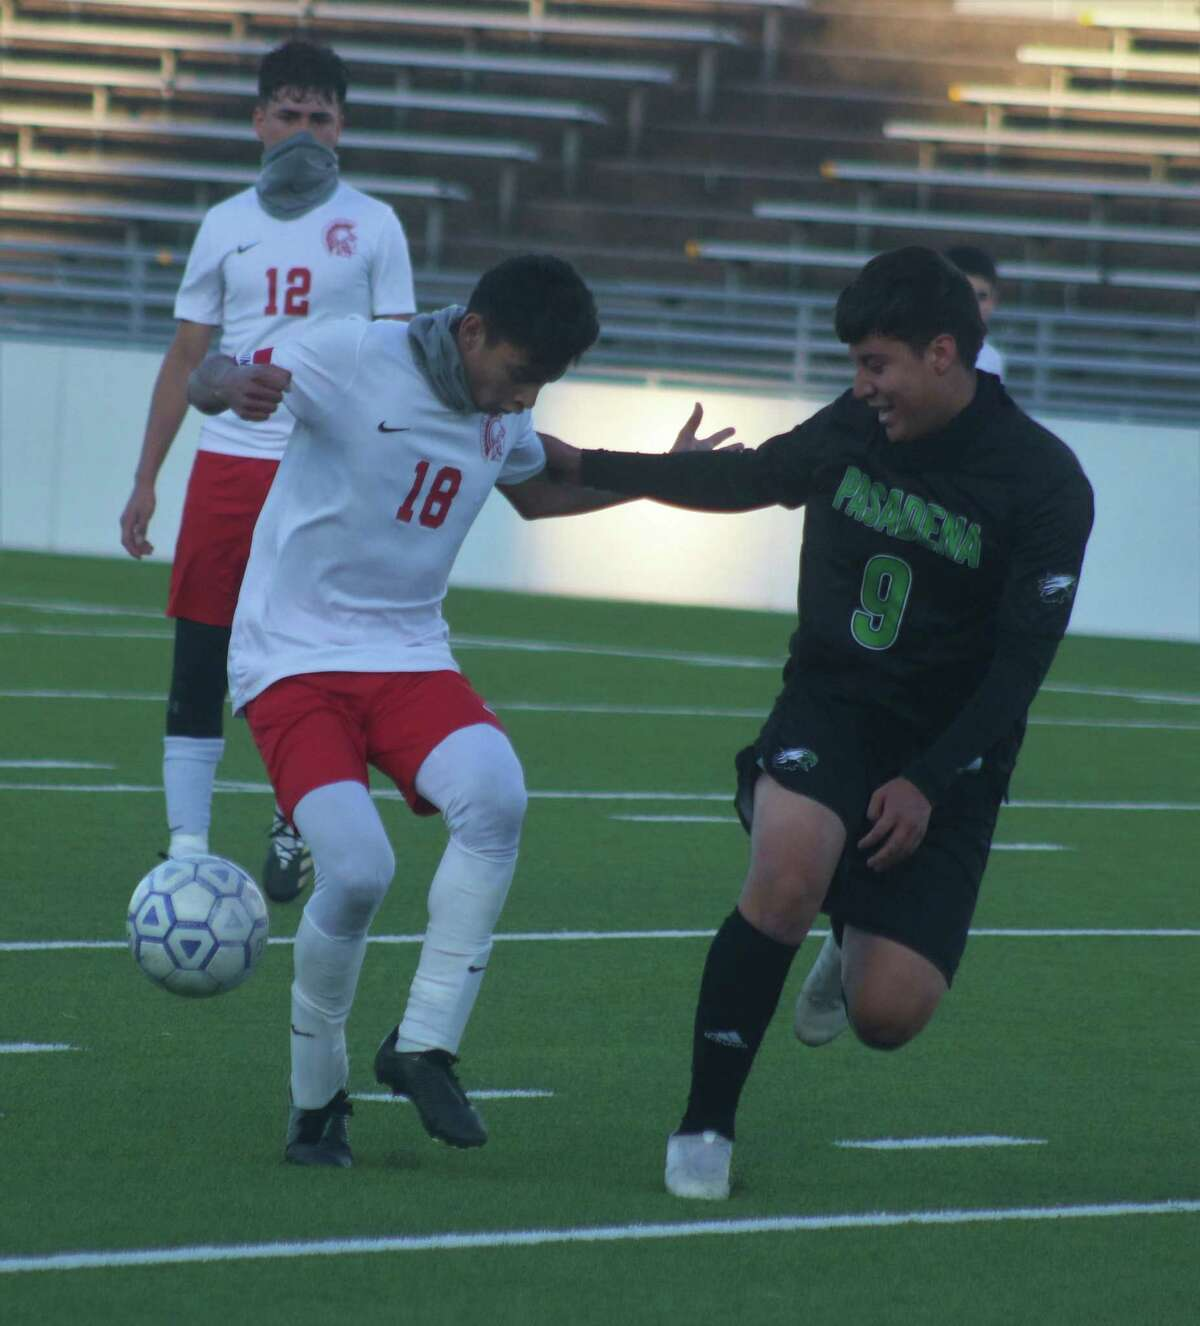 Pasadena's Justin Duran and a South Houston player try to locate the ball at midfield in their 22-6A match late Saturday afternoon.